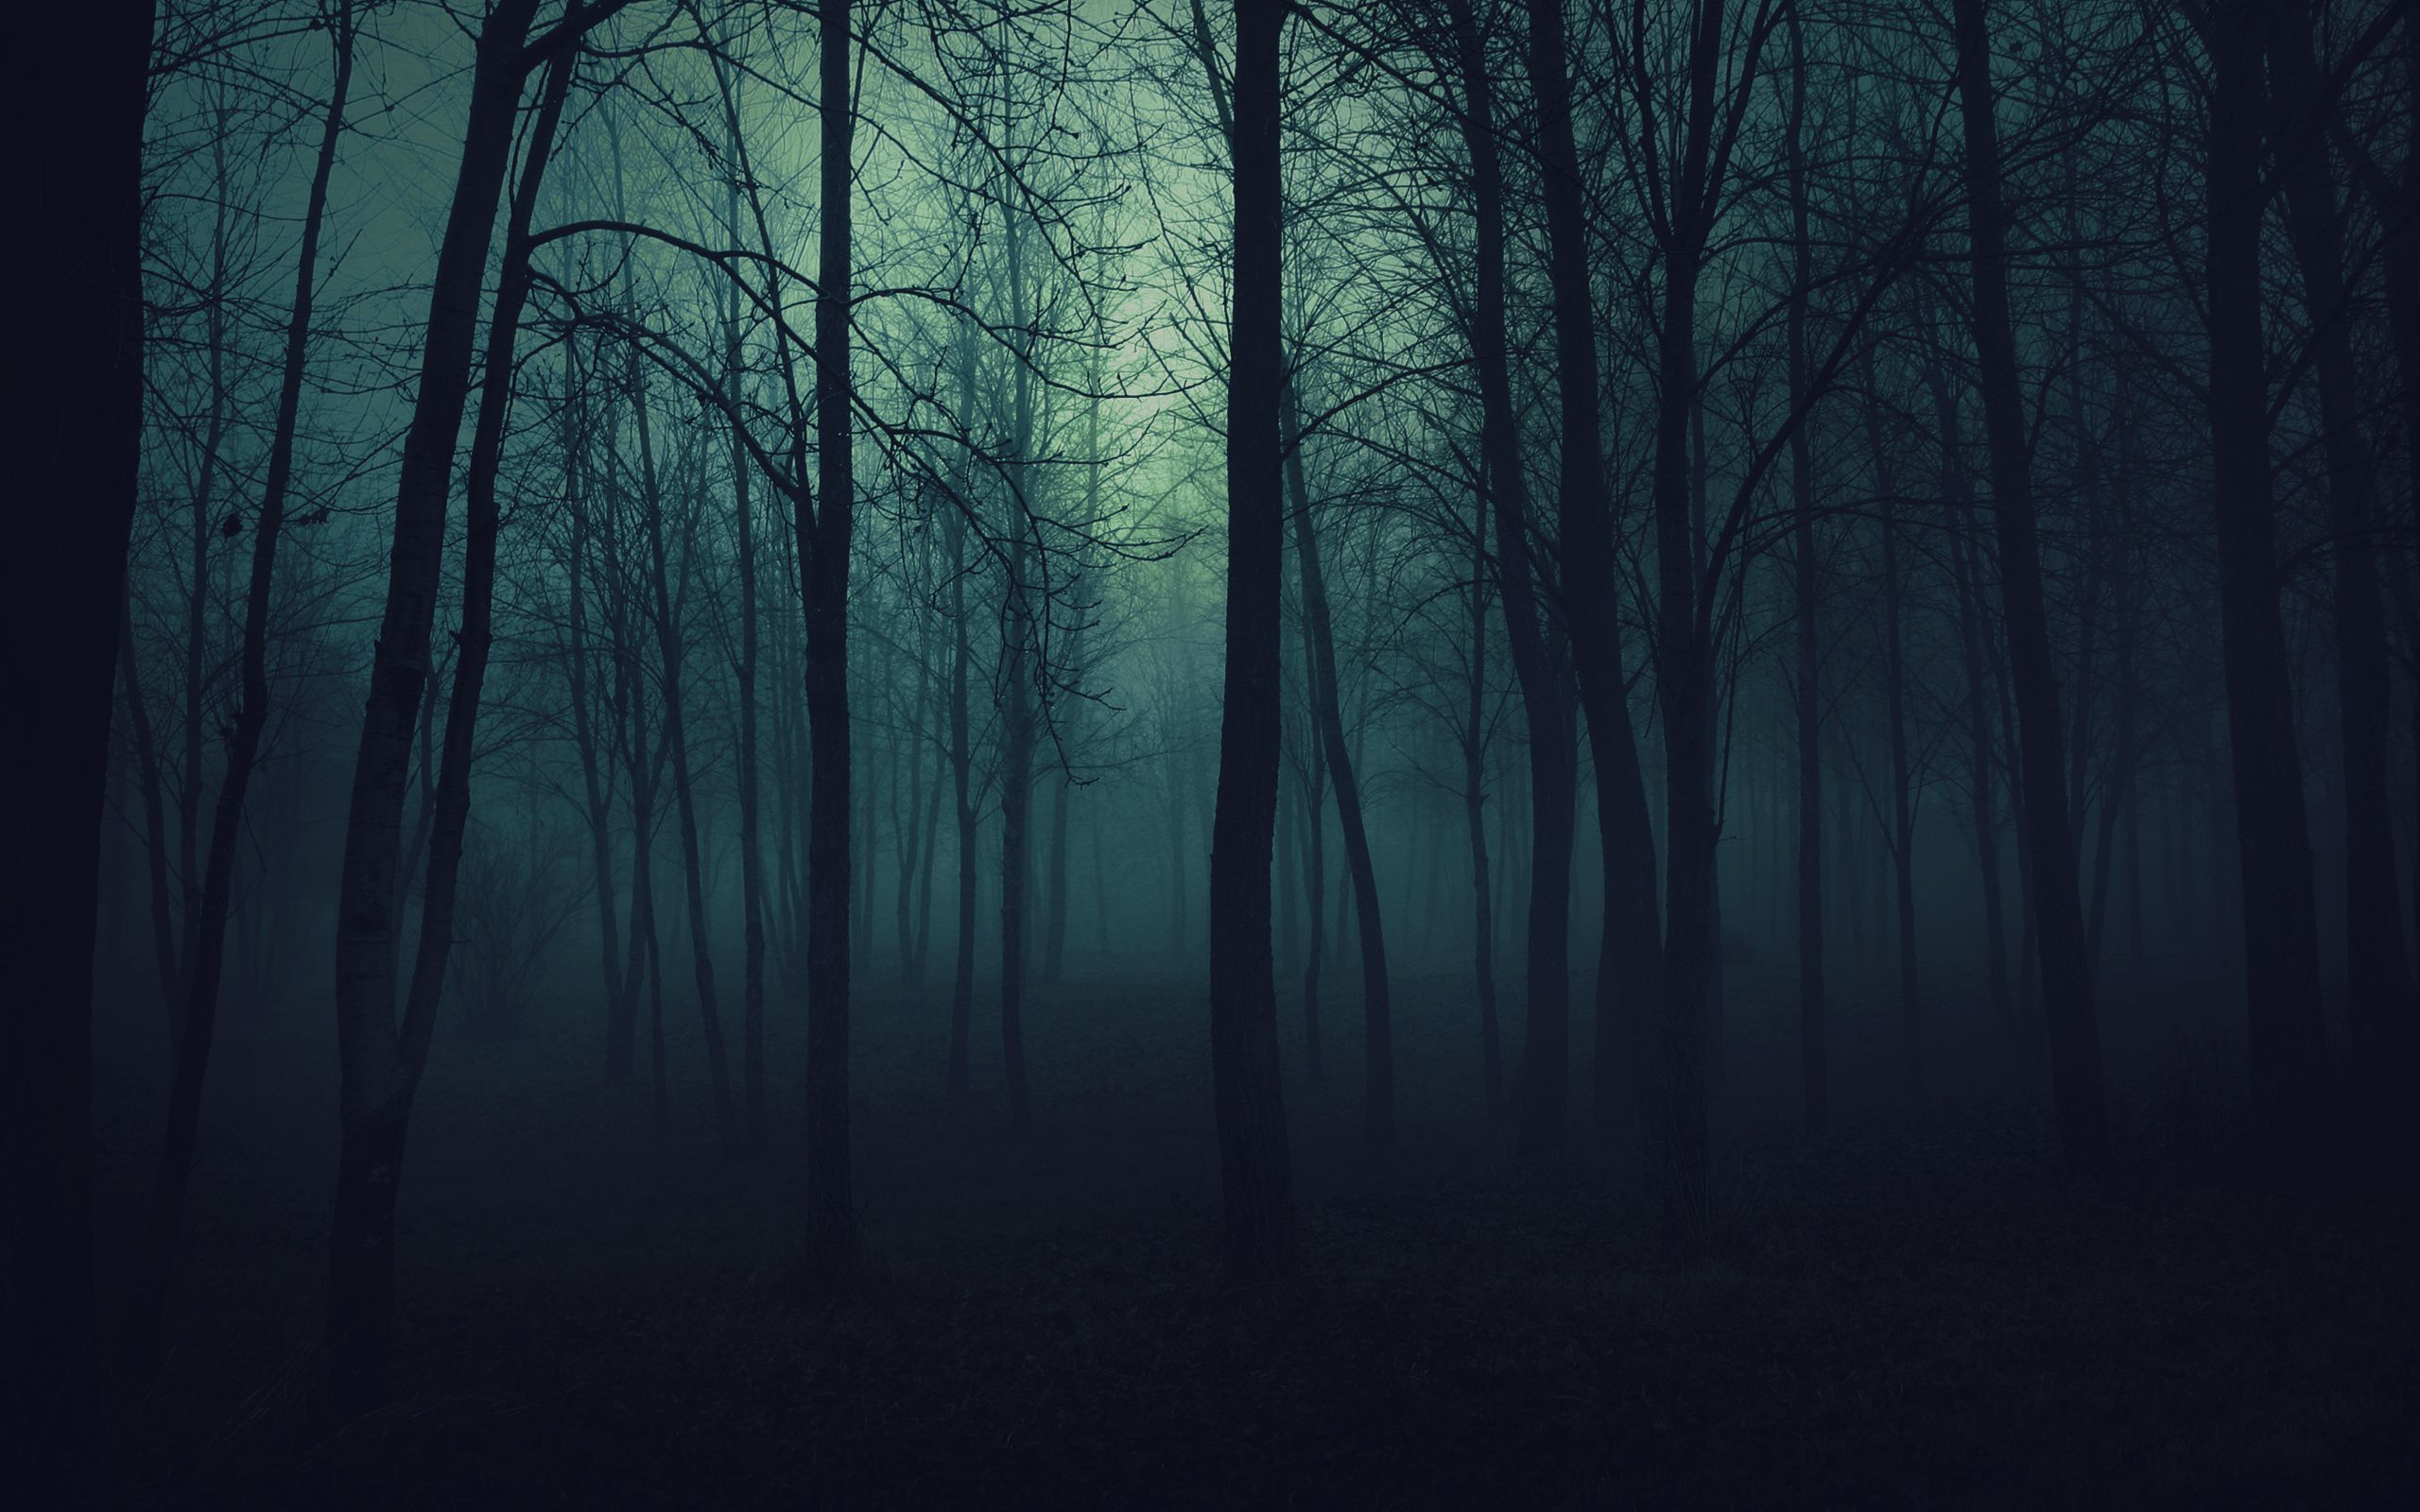 Scary Forest Wallpaper | Dark wood background, Forest background ...